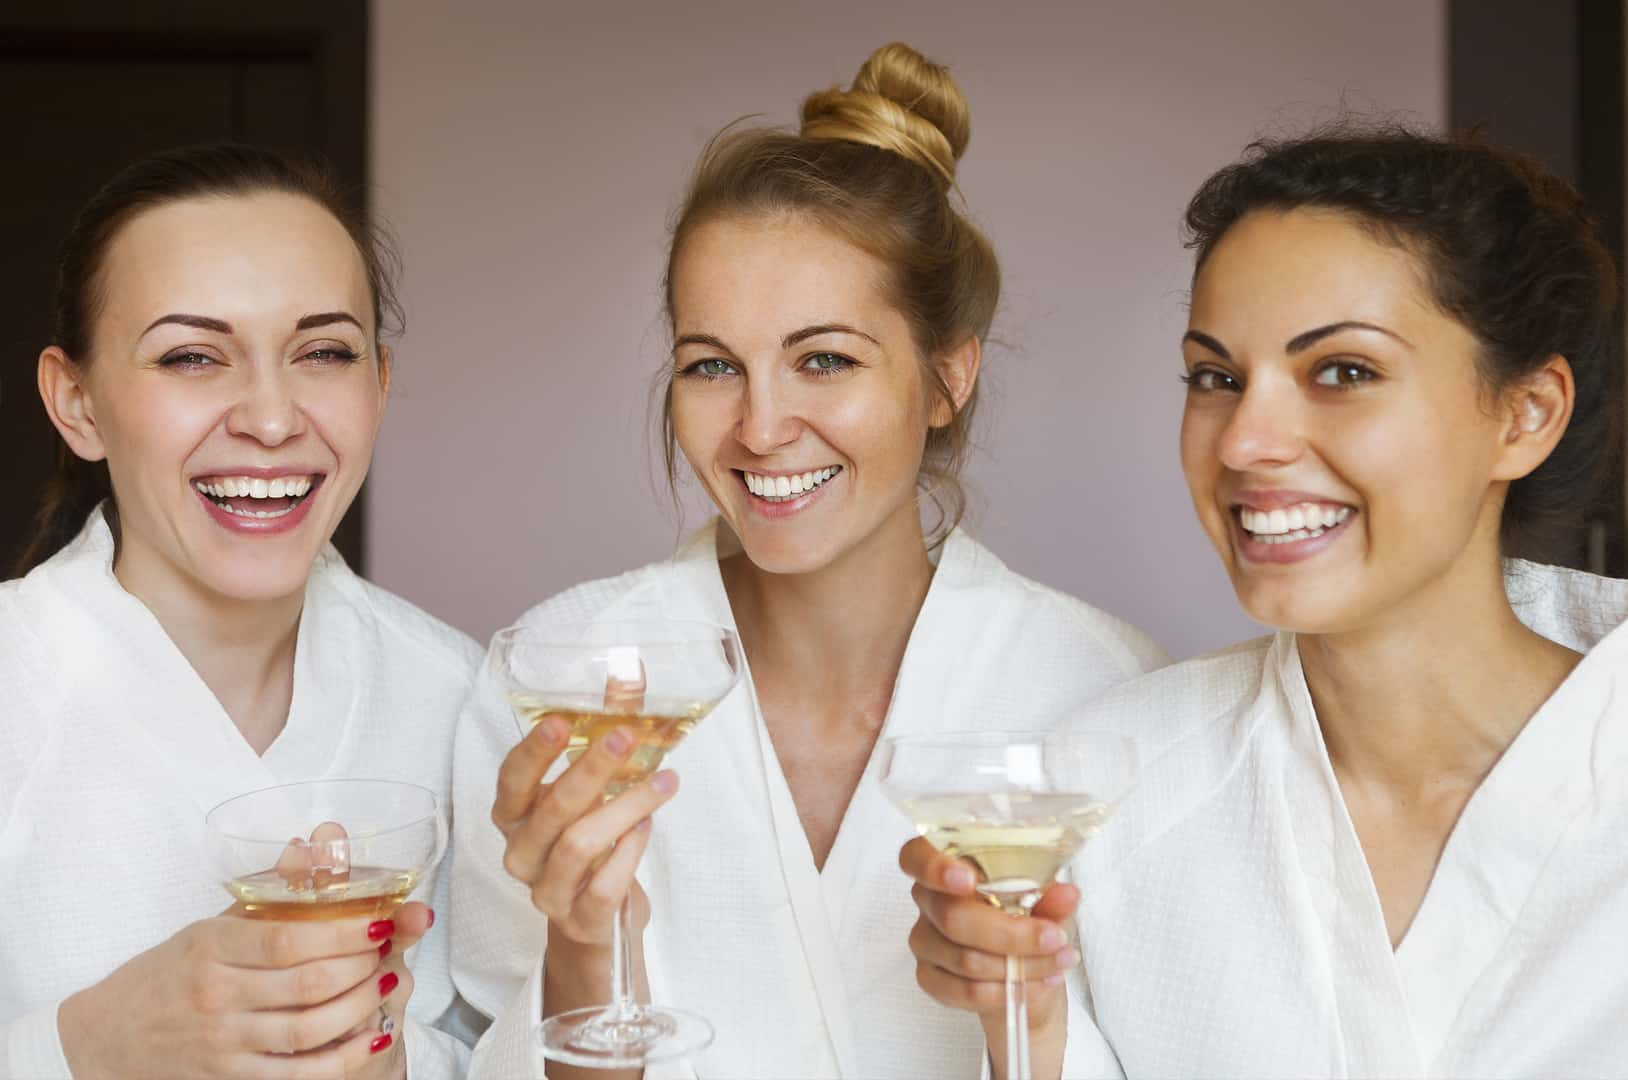 Image of three women in white robes, laughing and drinking champagne